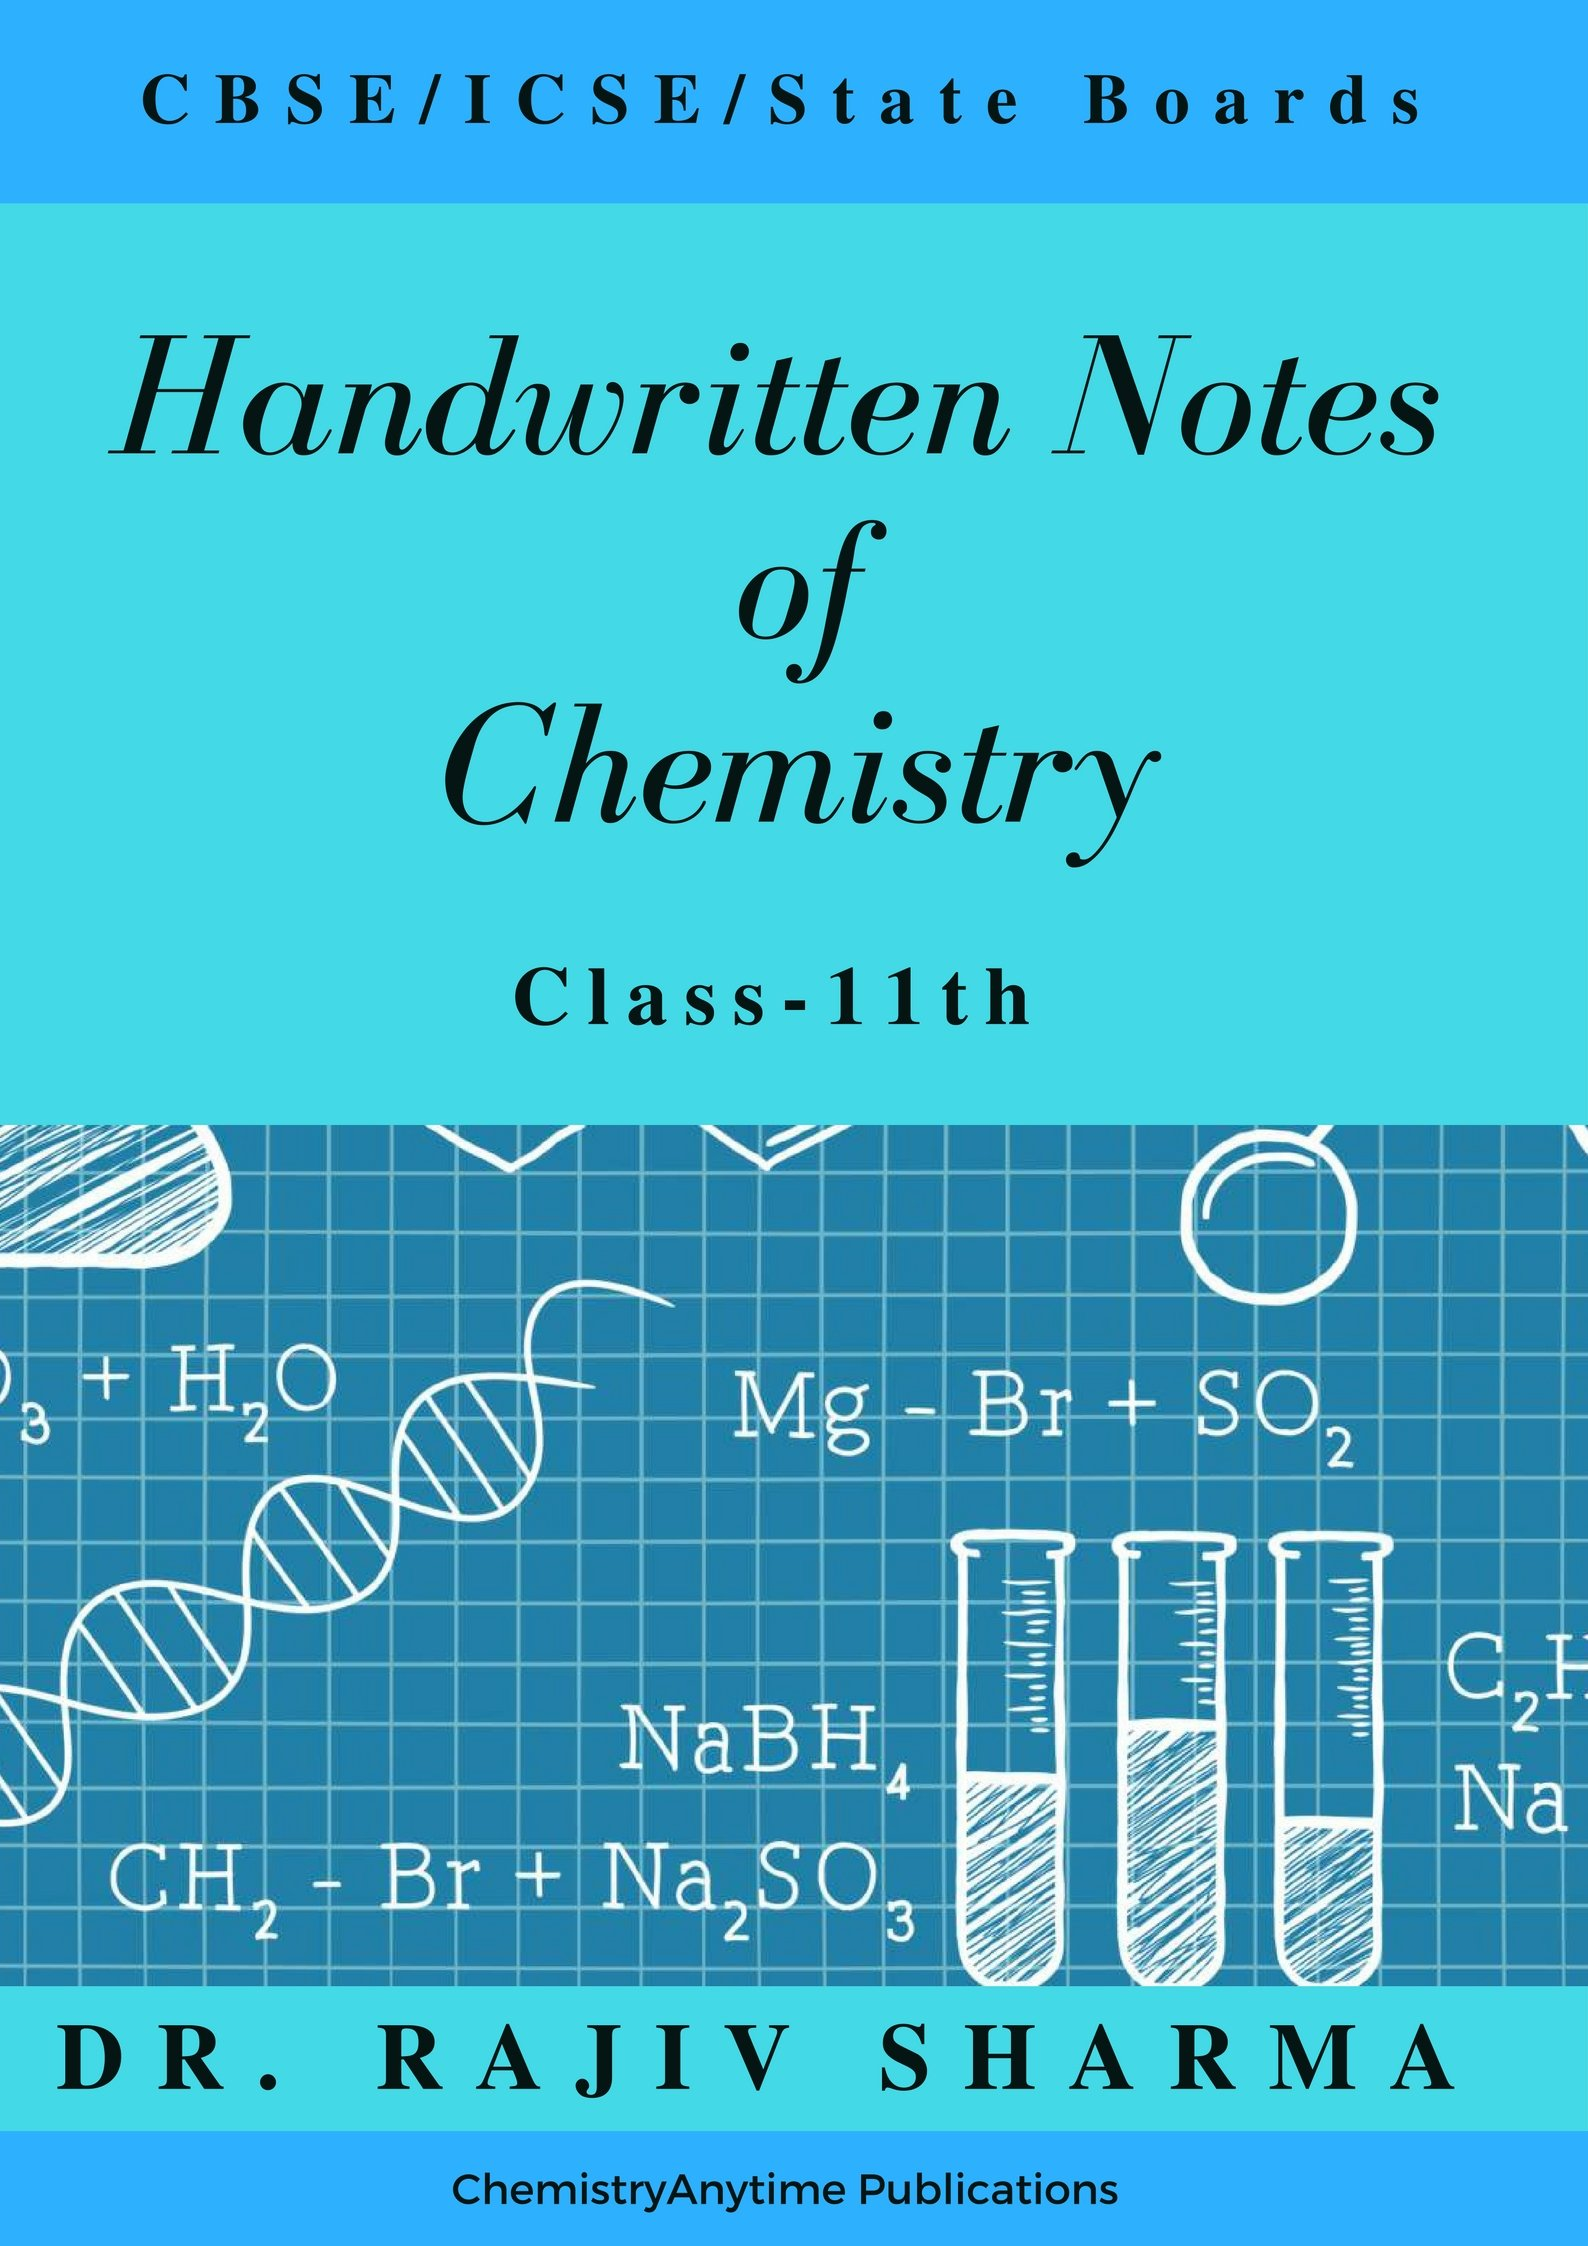 Buy Handwritten Notes of Chemistry-Class 11th (Handwritten